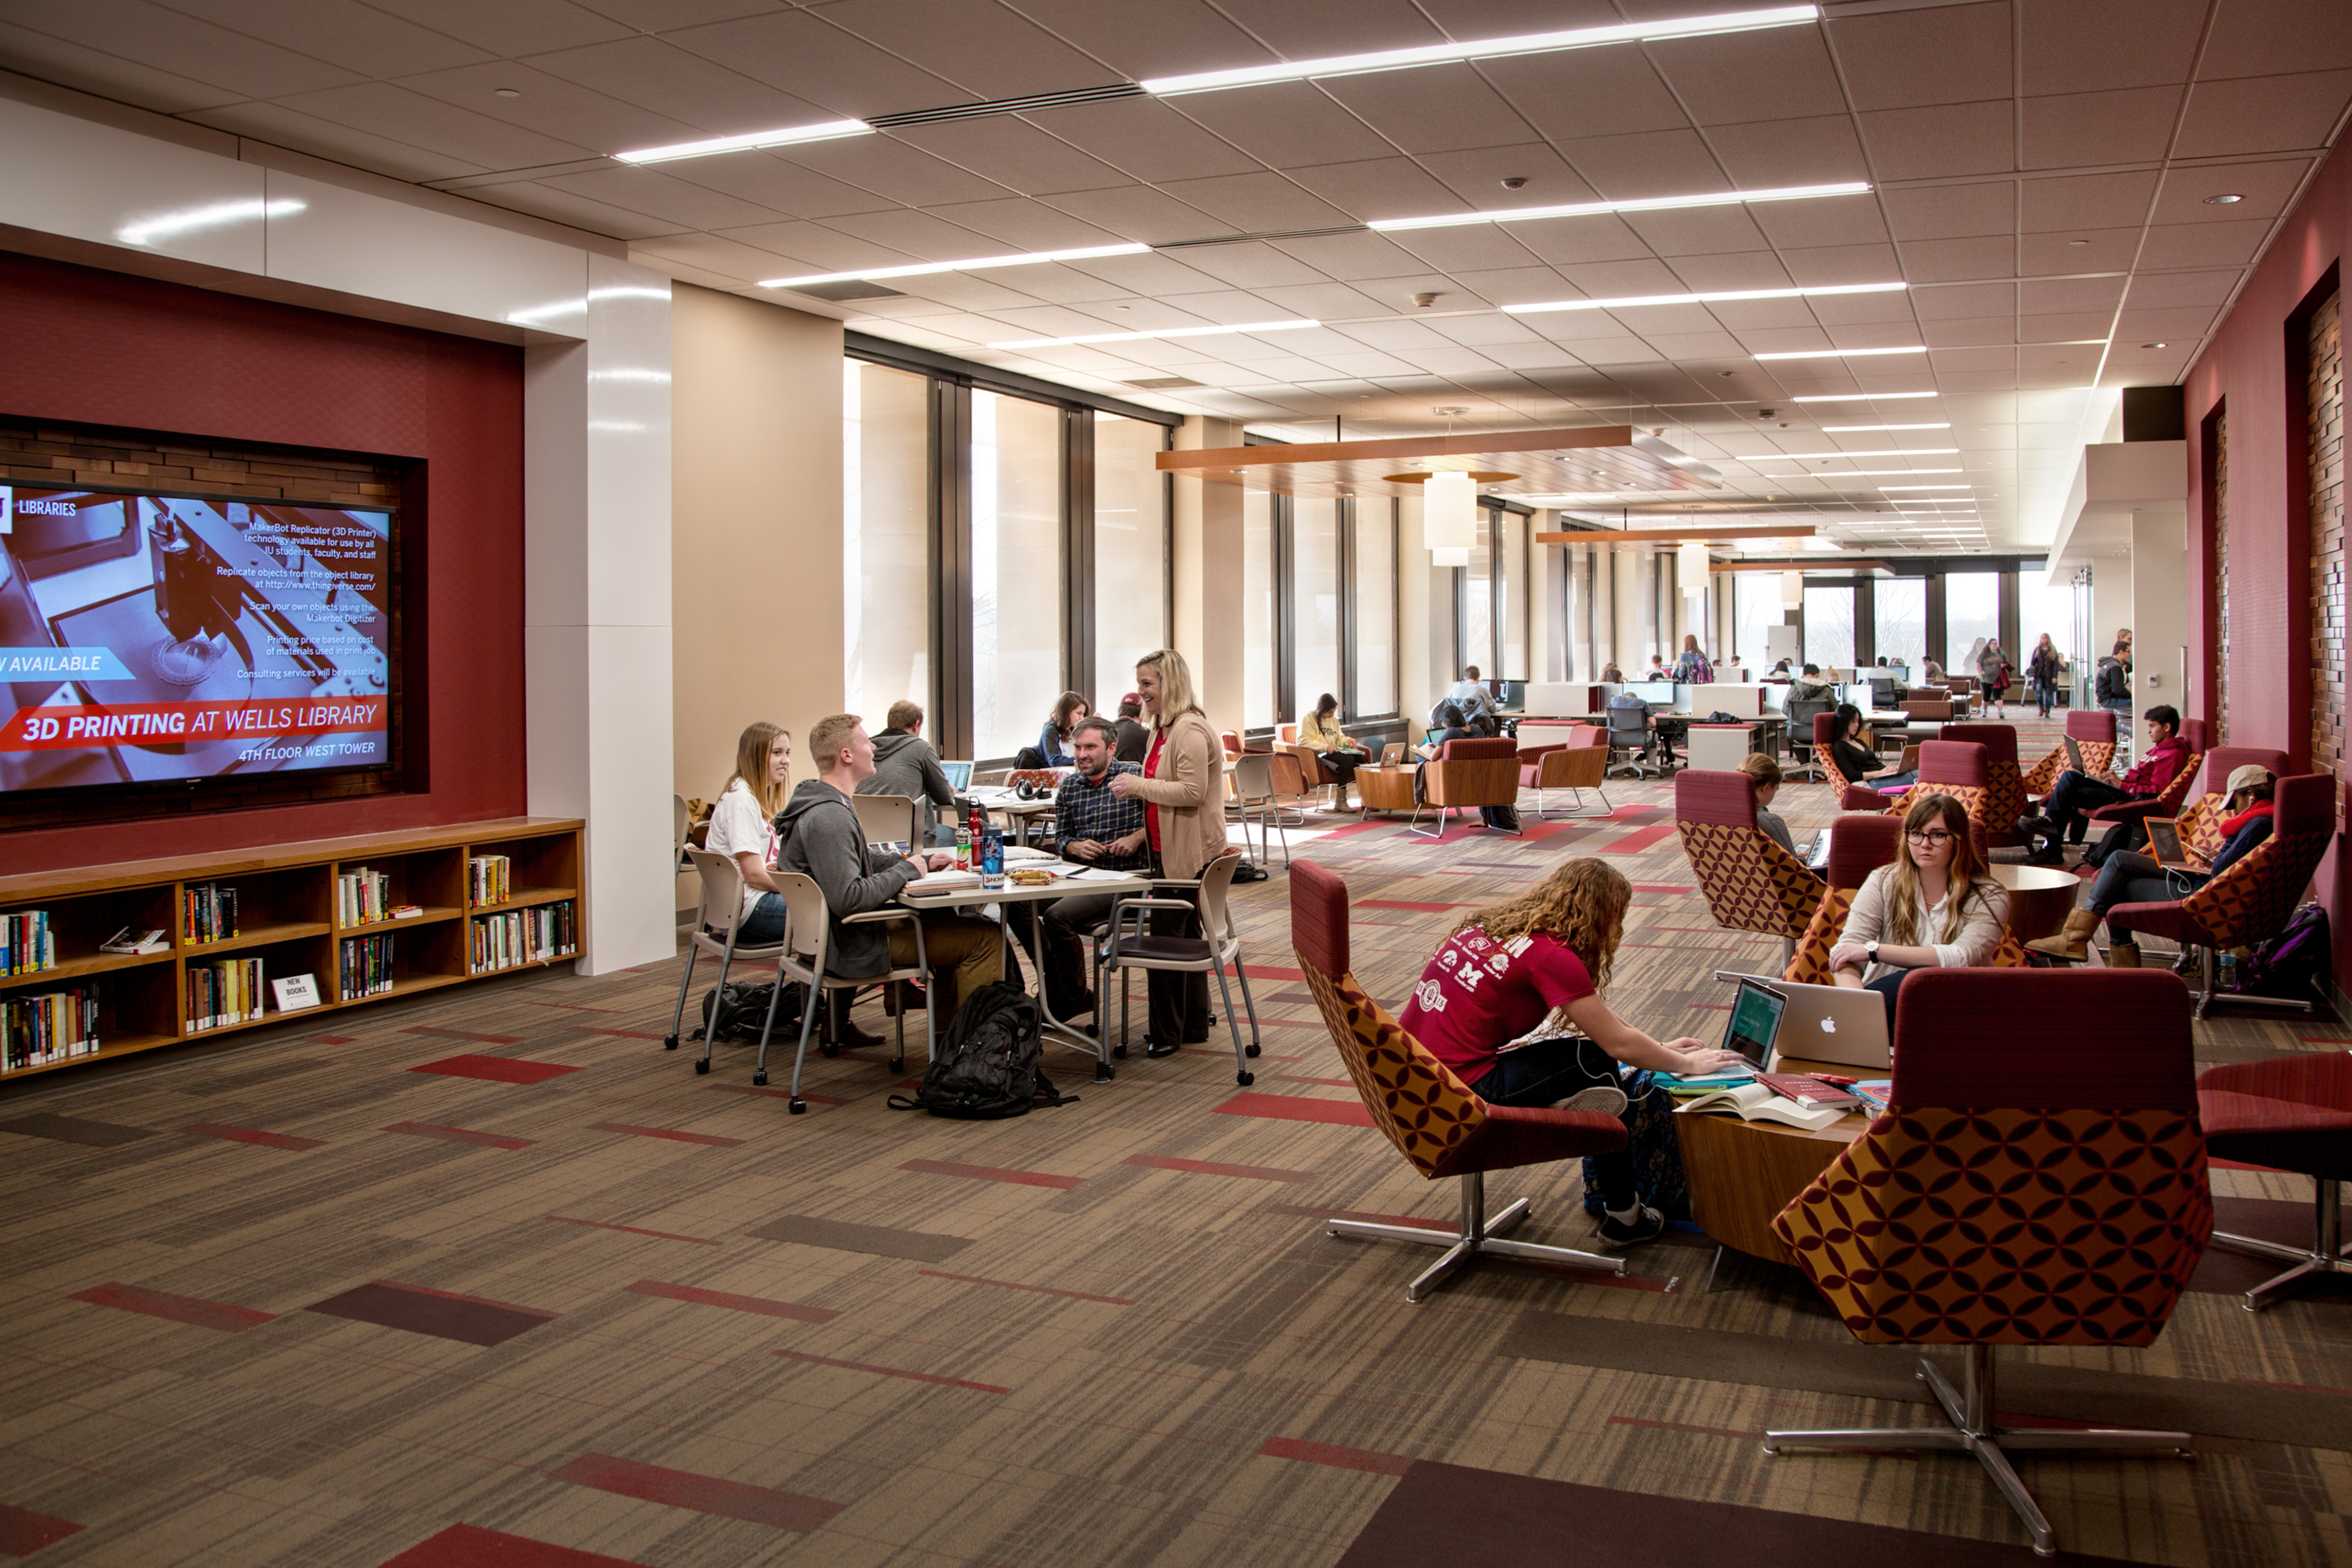 Terrific About Administration Indiana University Libraries Largest Home Design Picture Inspirations Pitcheantrous